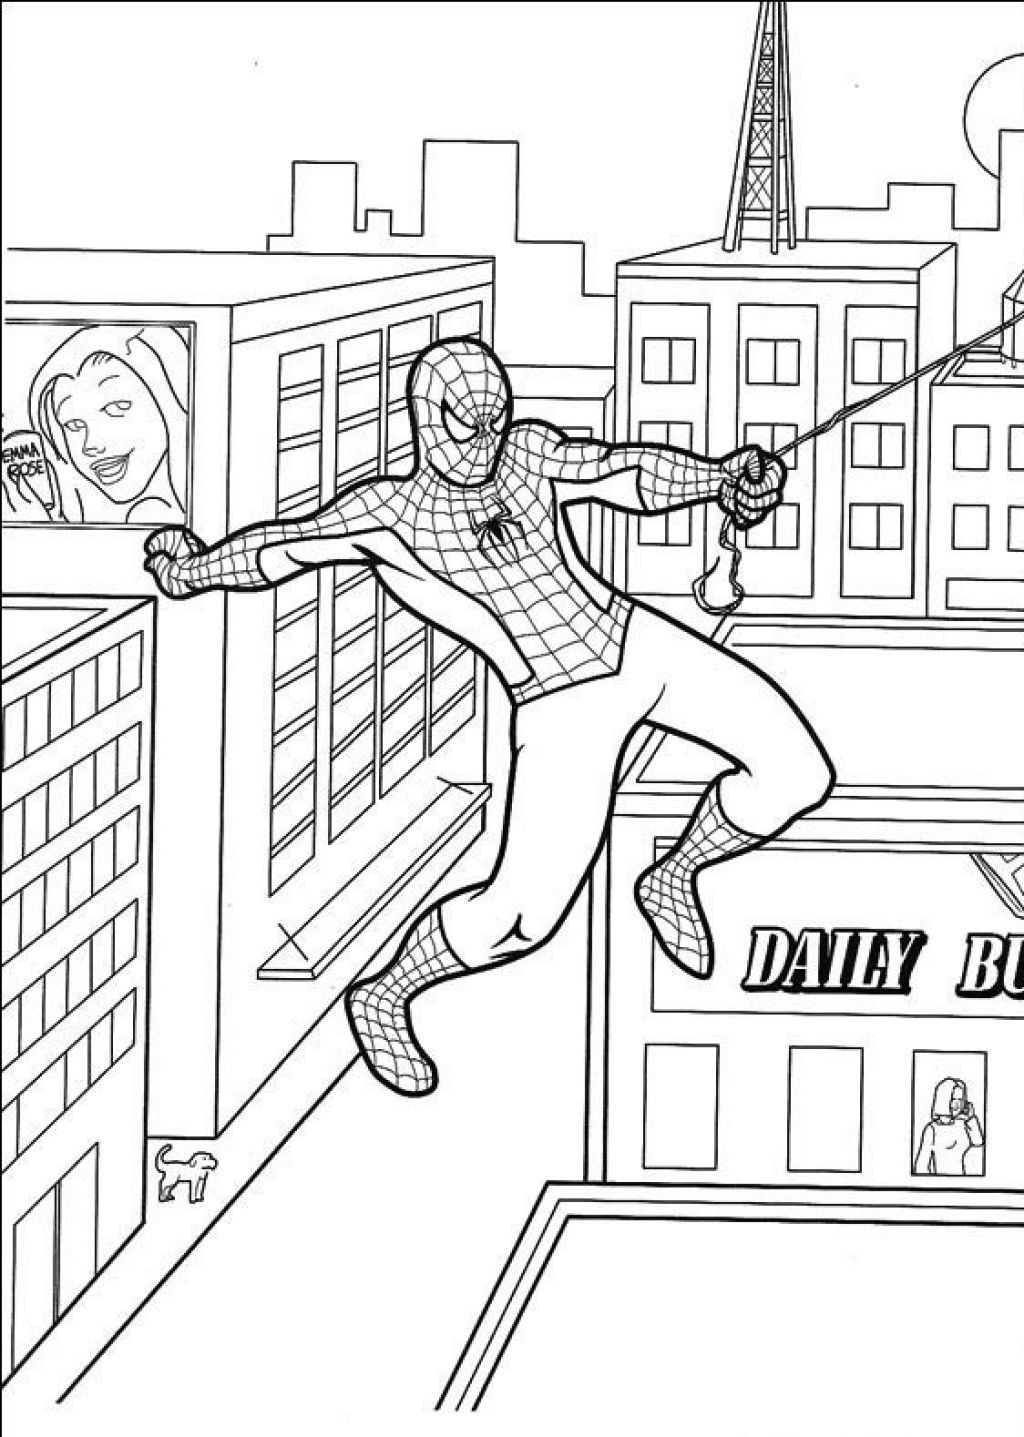 Free Printable Spiderman Coloring Pages For Kids | Coloring pages ...